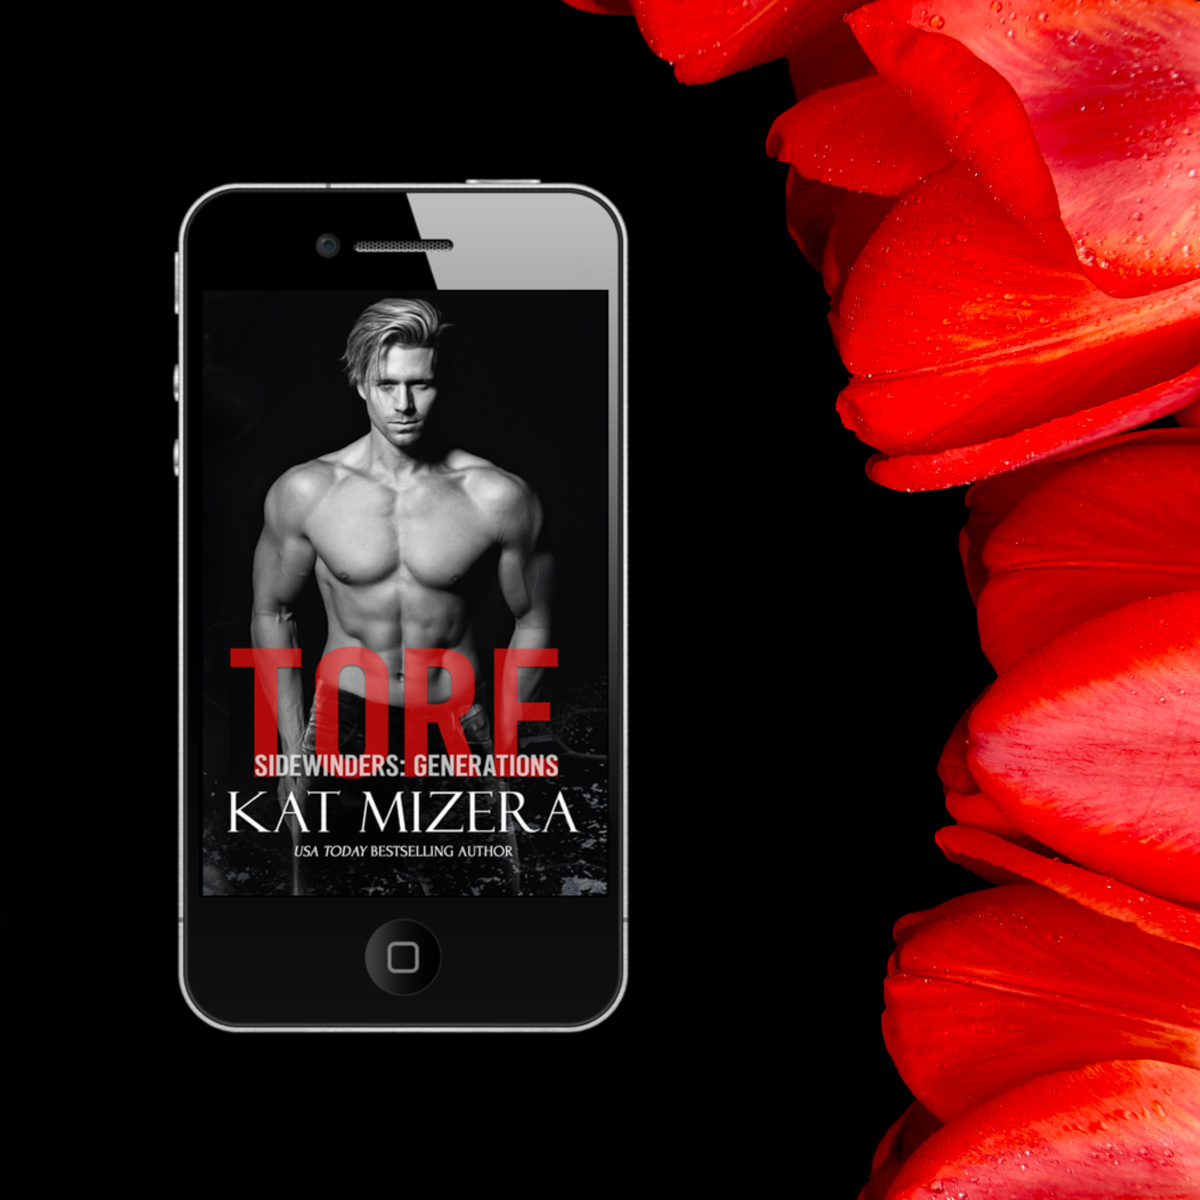 Tore by Kat Mizera releases on January 19th!  From the first taste she knows she could get drunk on the way Tore makes her feel, and one night with him will never be enough.  // @ellewoodspr @katmizera  #SingleMom #HockeyRomance #ContemporaryRomance #BookBlog #Bookblogger https://t.co/4VsB8WTuGh